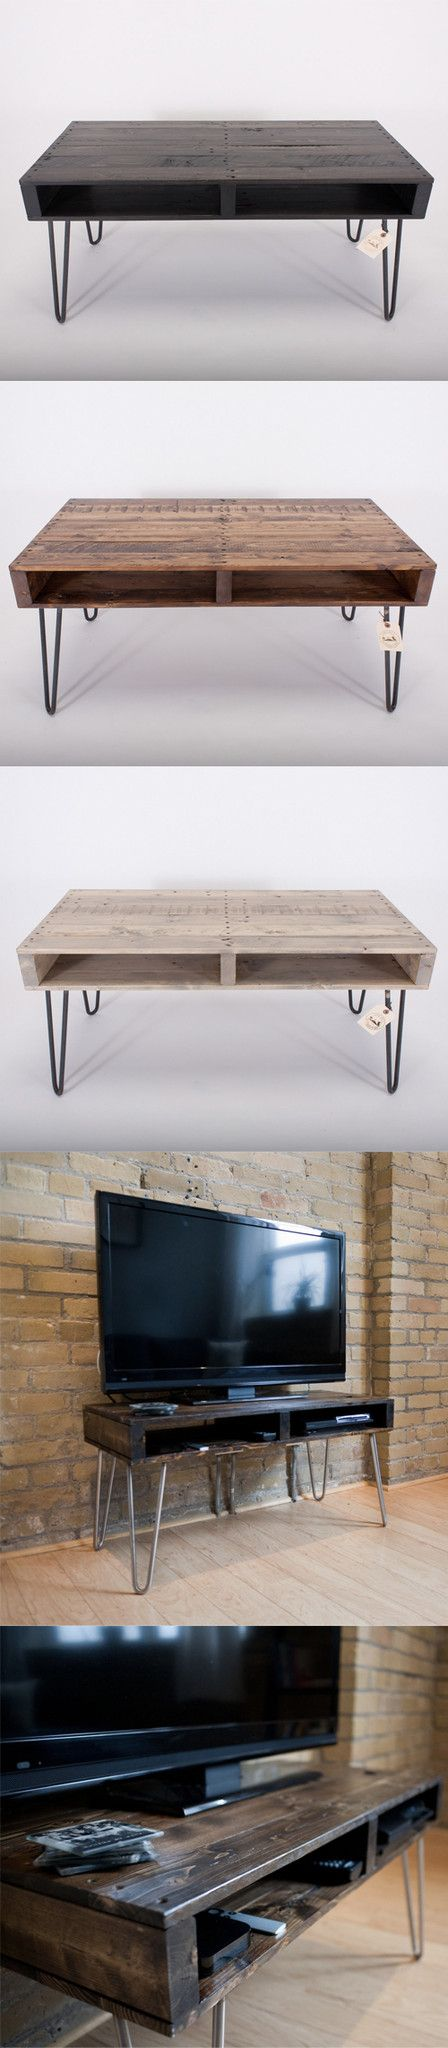 Handmade Reclaimed Pallet Wood TV Stand, coffee table